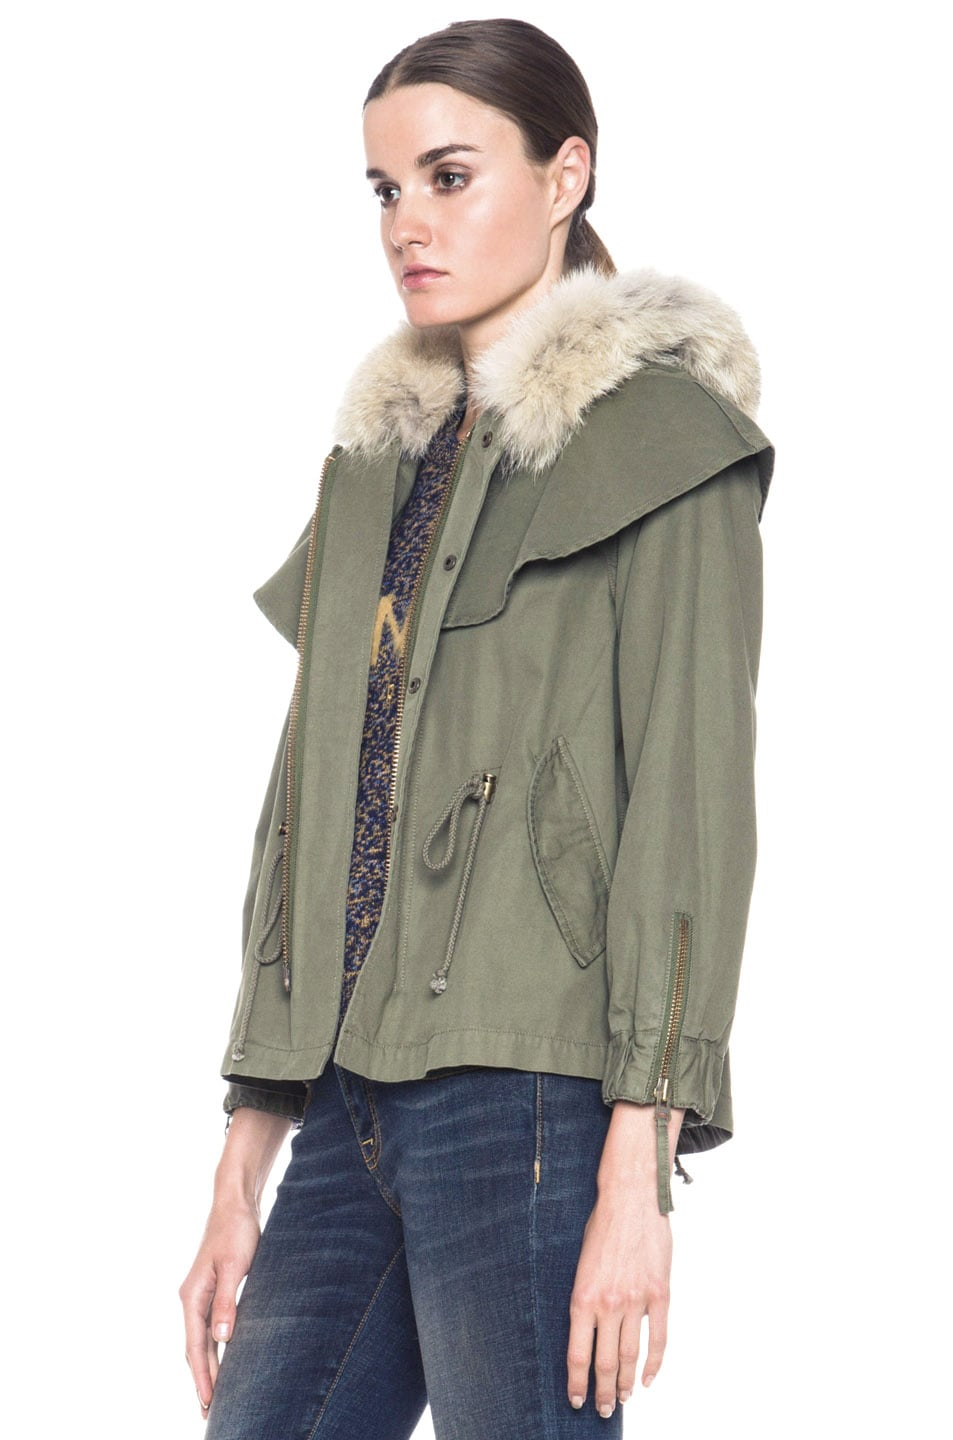 Image 3 of Skaist Taylor Cropped Cape Cotton Jacket with Fur in Army Green